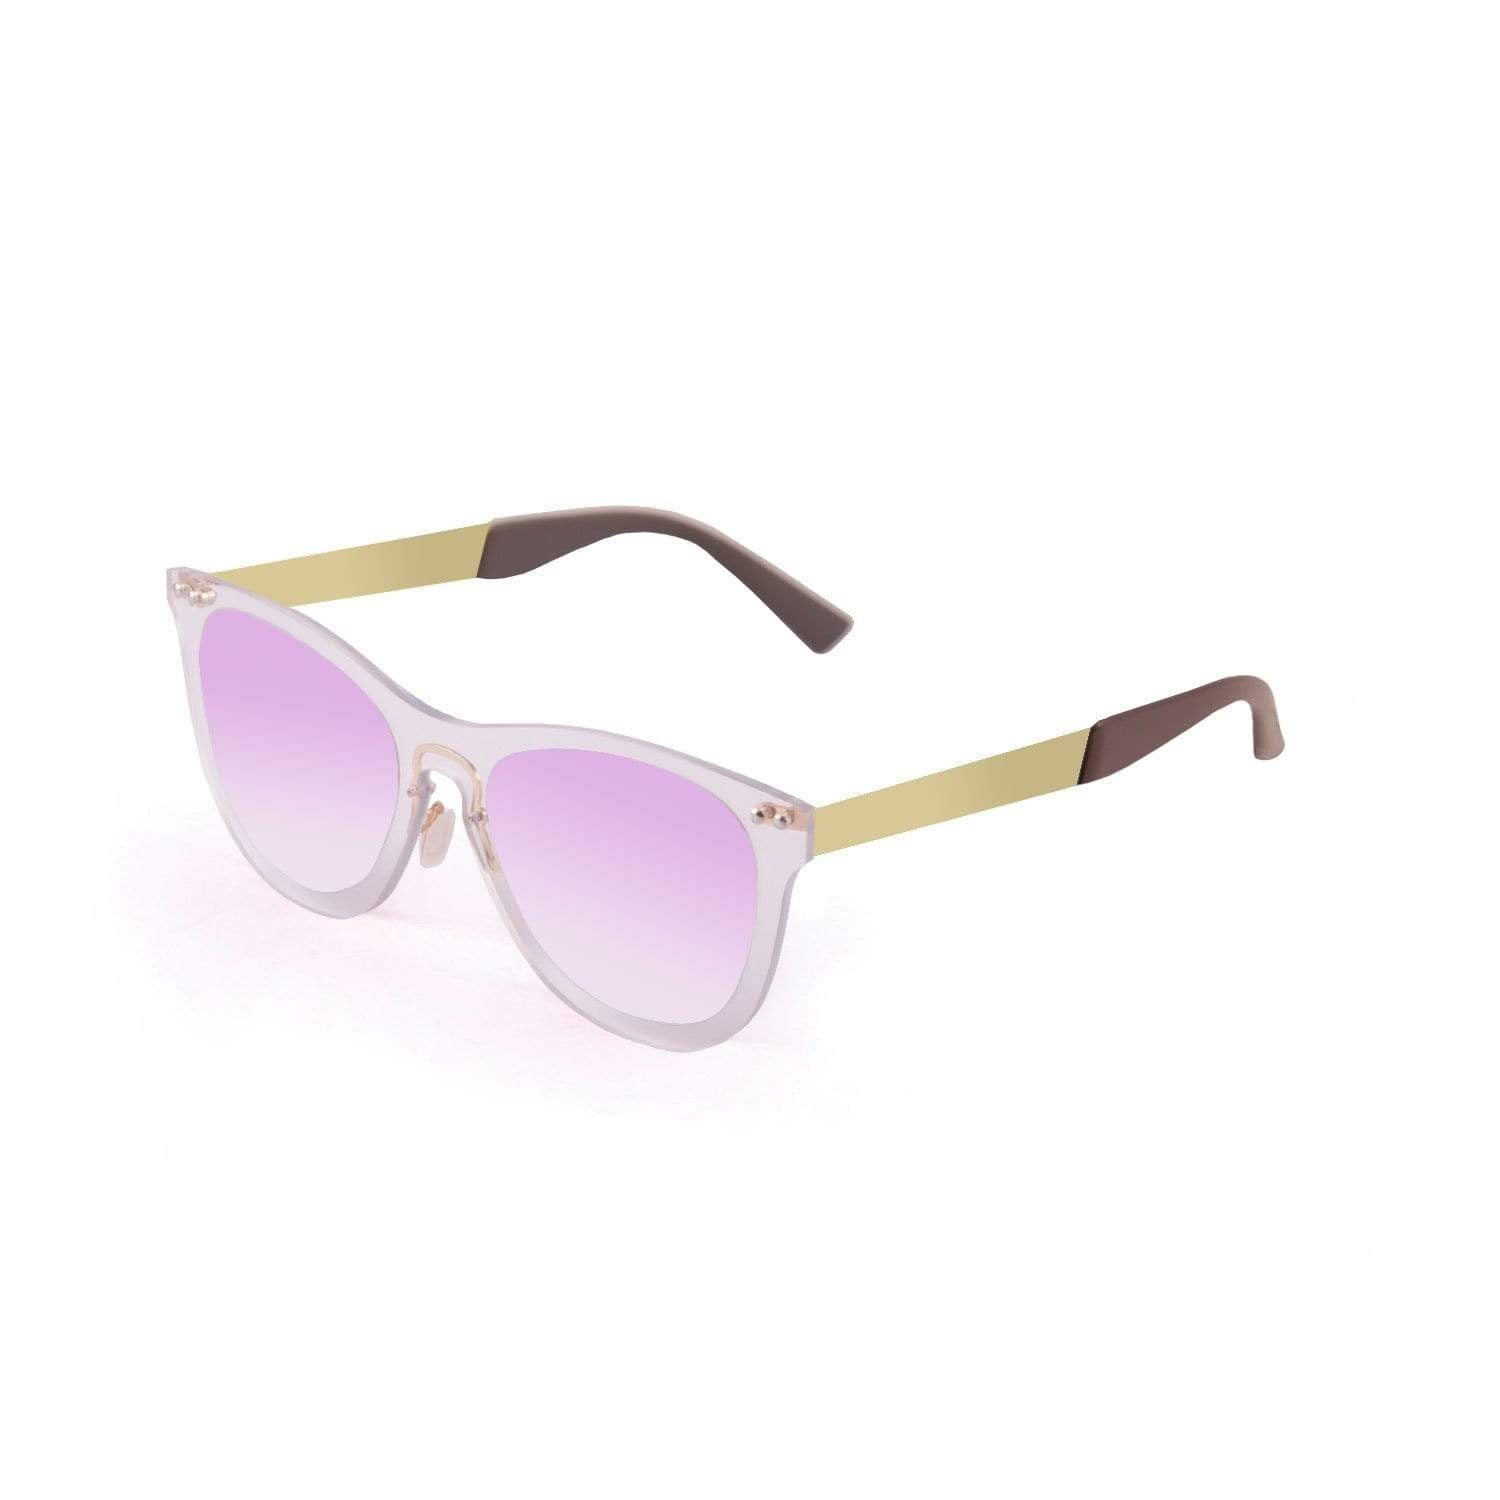 Ocean Sunglasses Accessories Sunglasses violet / NOSIZE Ocean Sunglasses - FLORENCIA